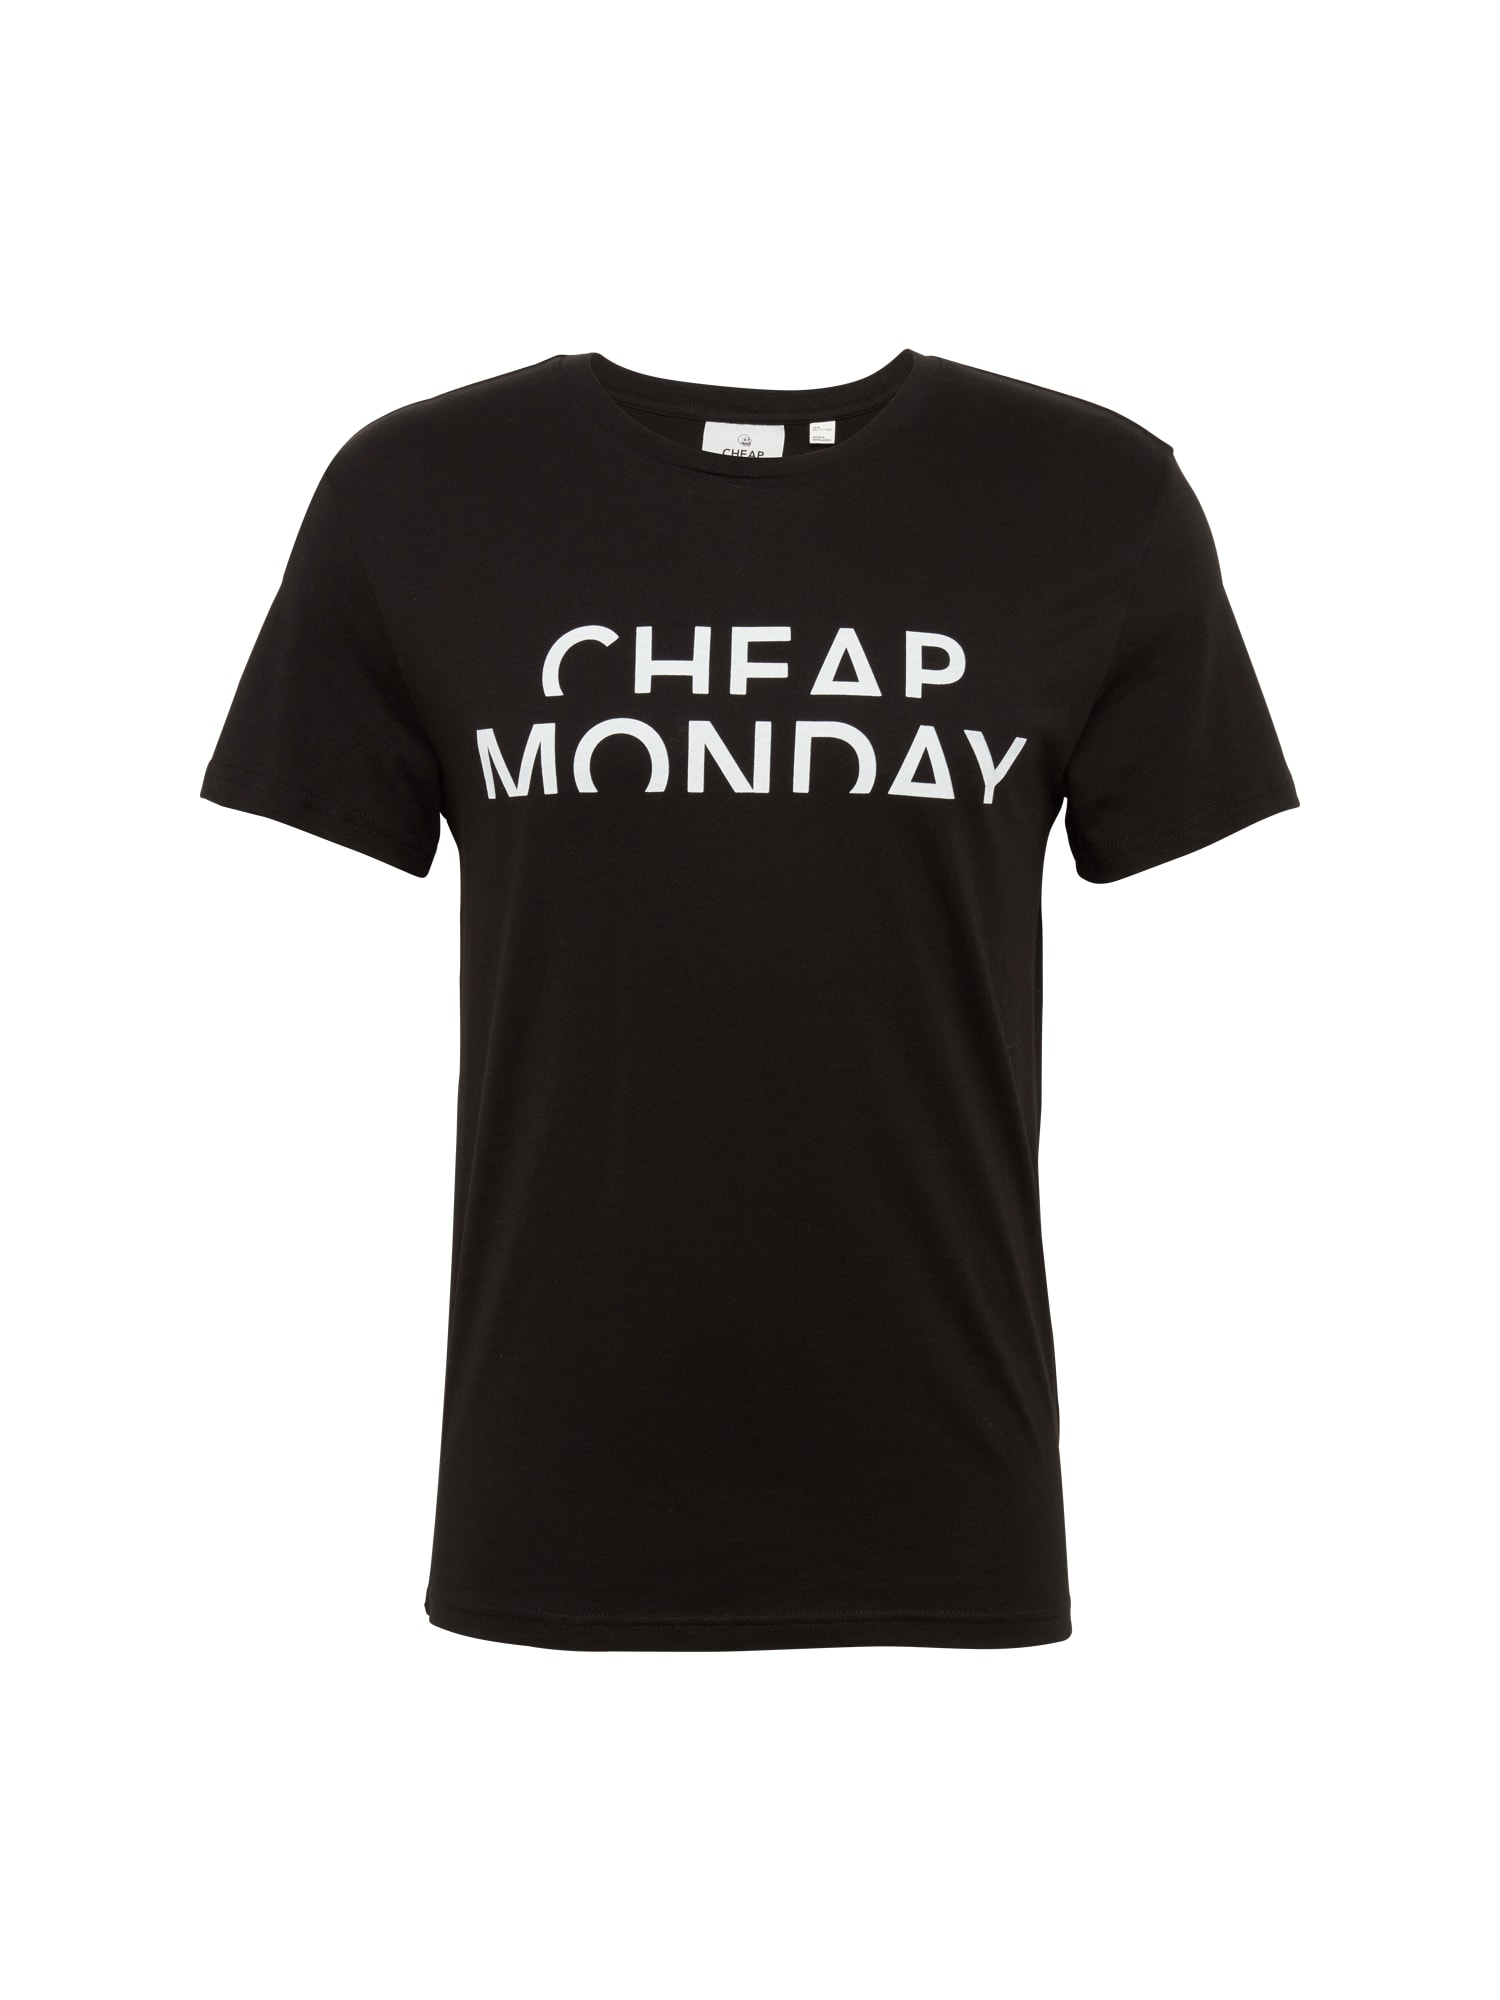 CHEAP MONDAY Heren Shirt Standard tee Spliced cheap zwart wit